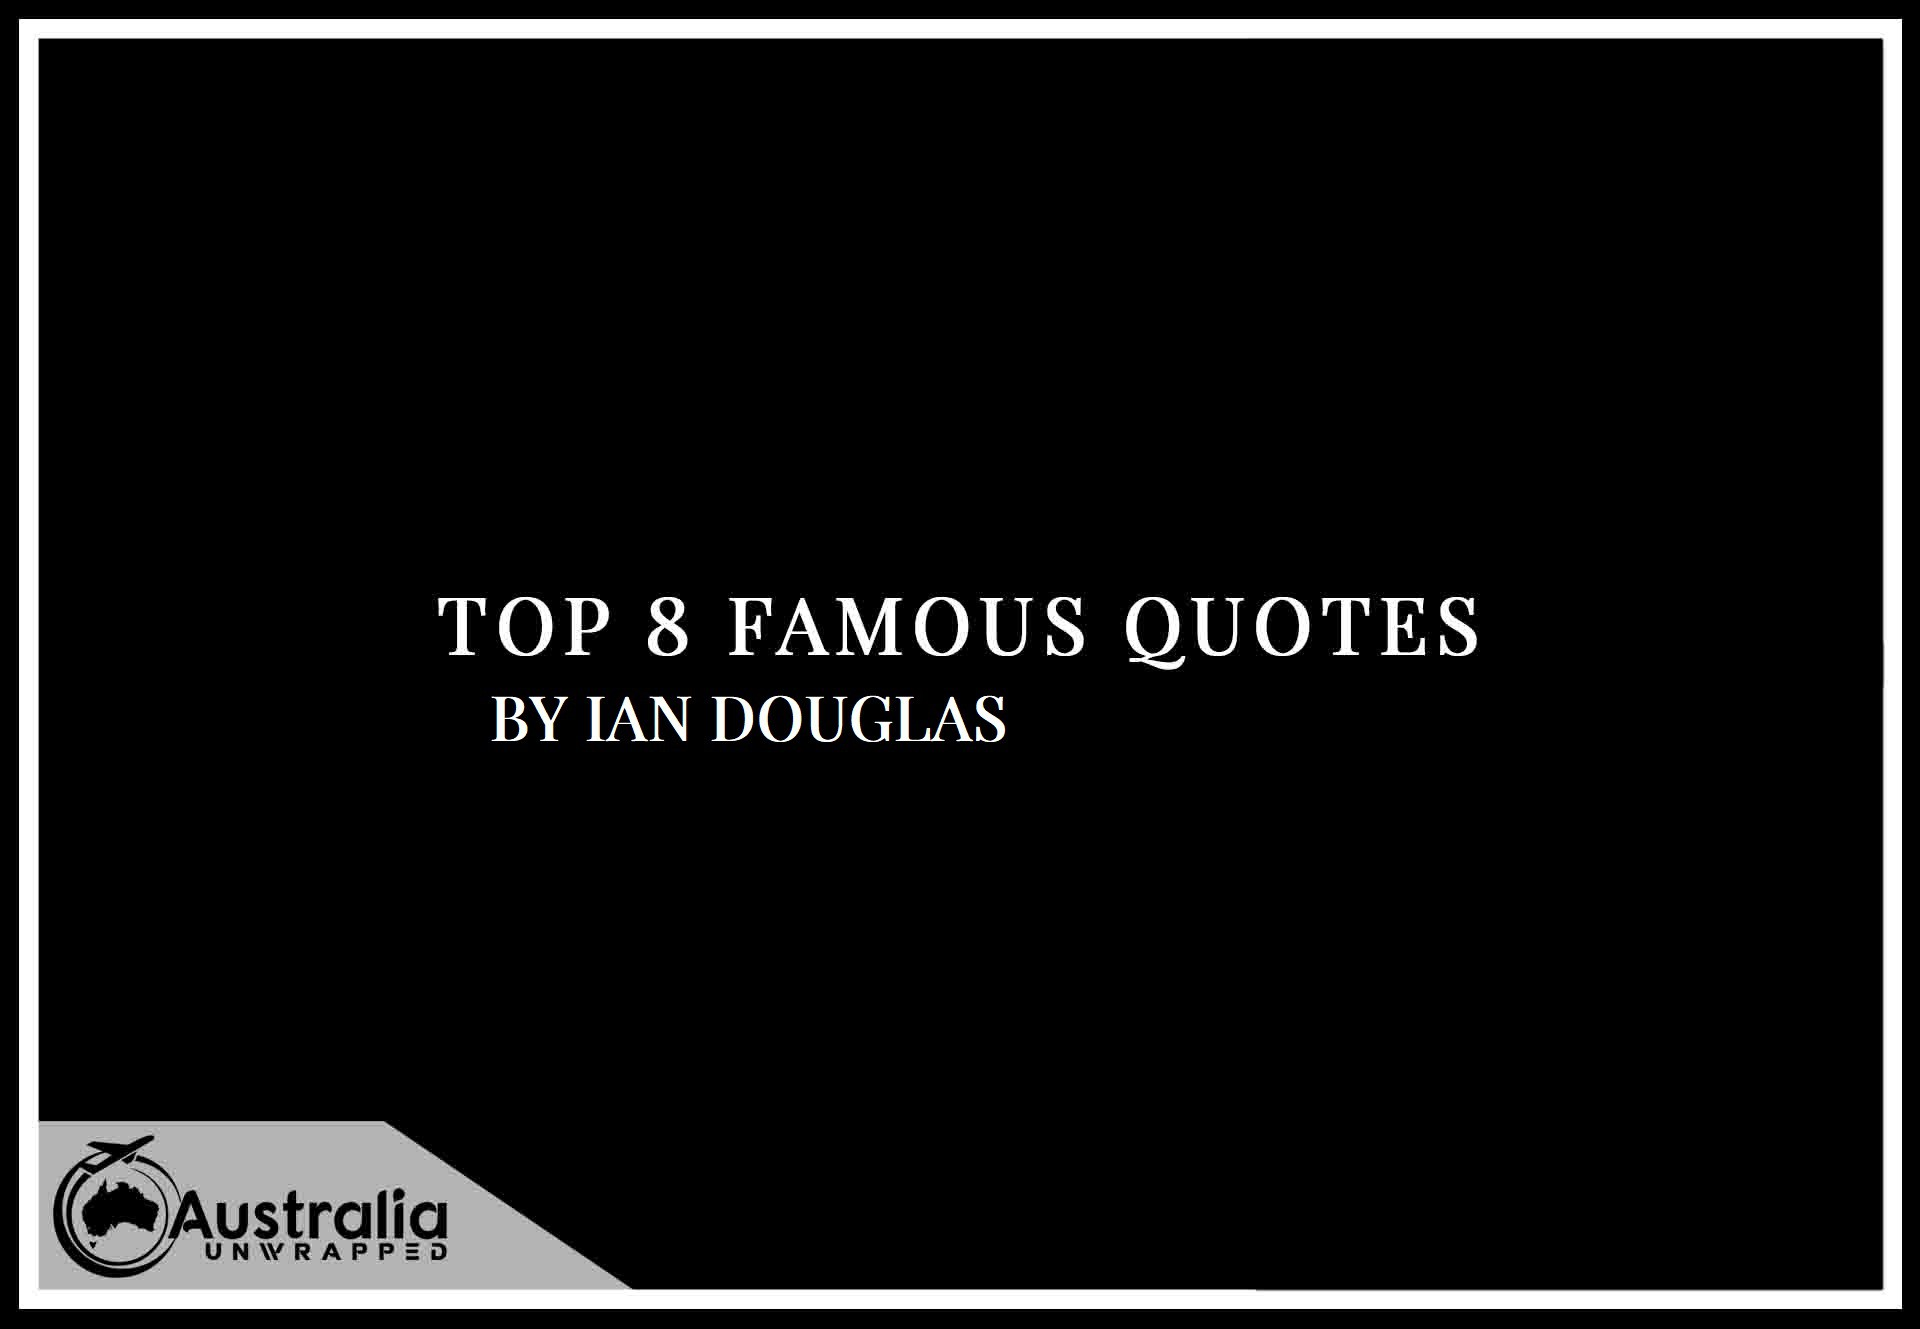 Top 8 Famous Quotes by Author Ian Douglas